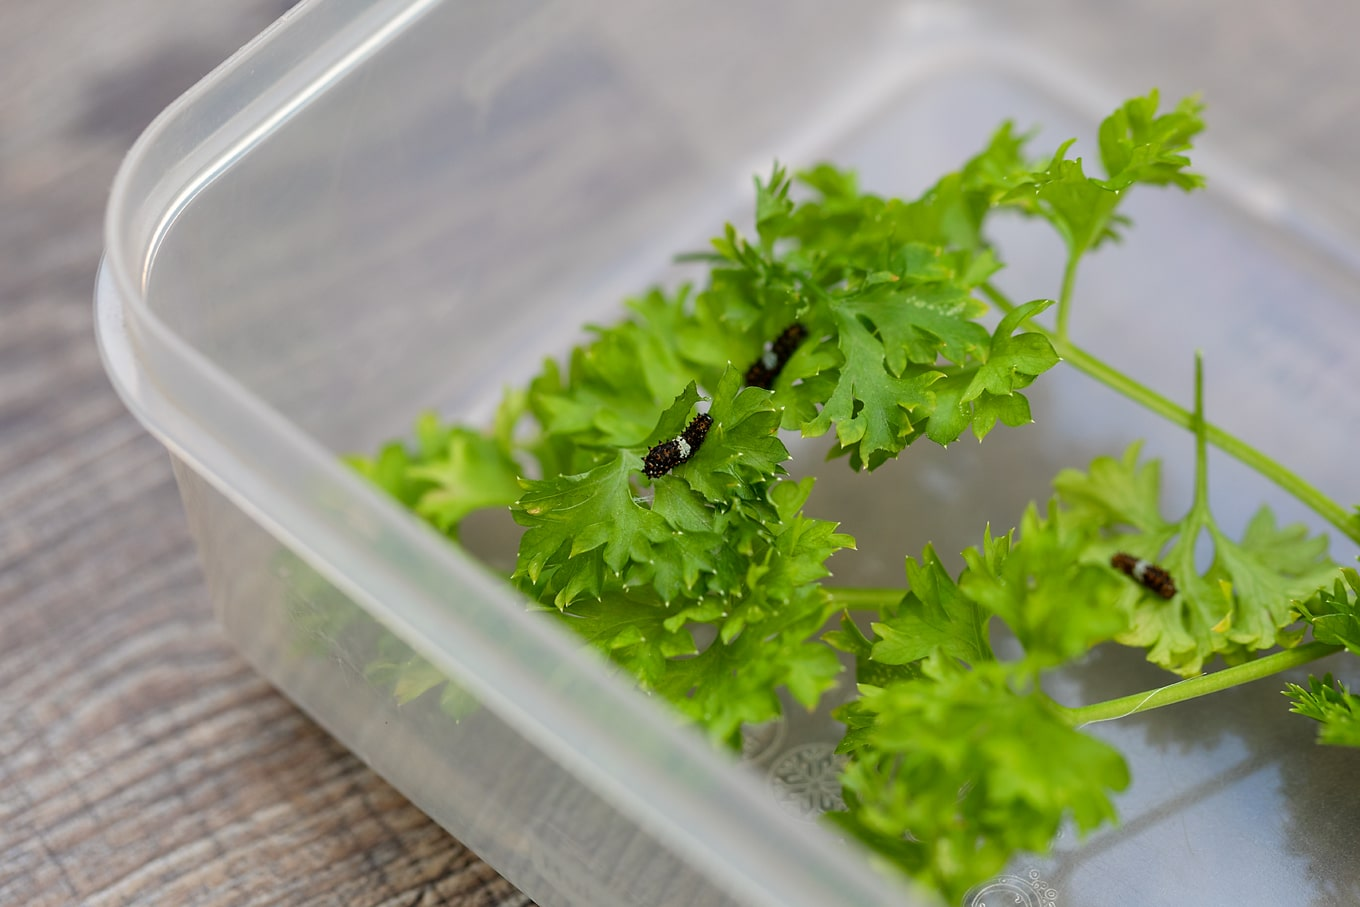 Newborn Black Swallowtail Caterpillars on Parsley